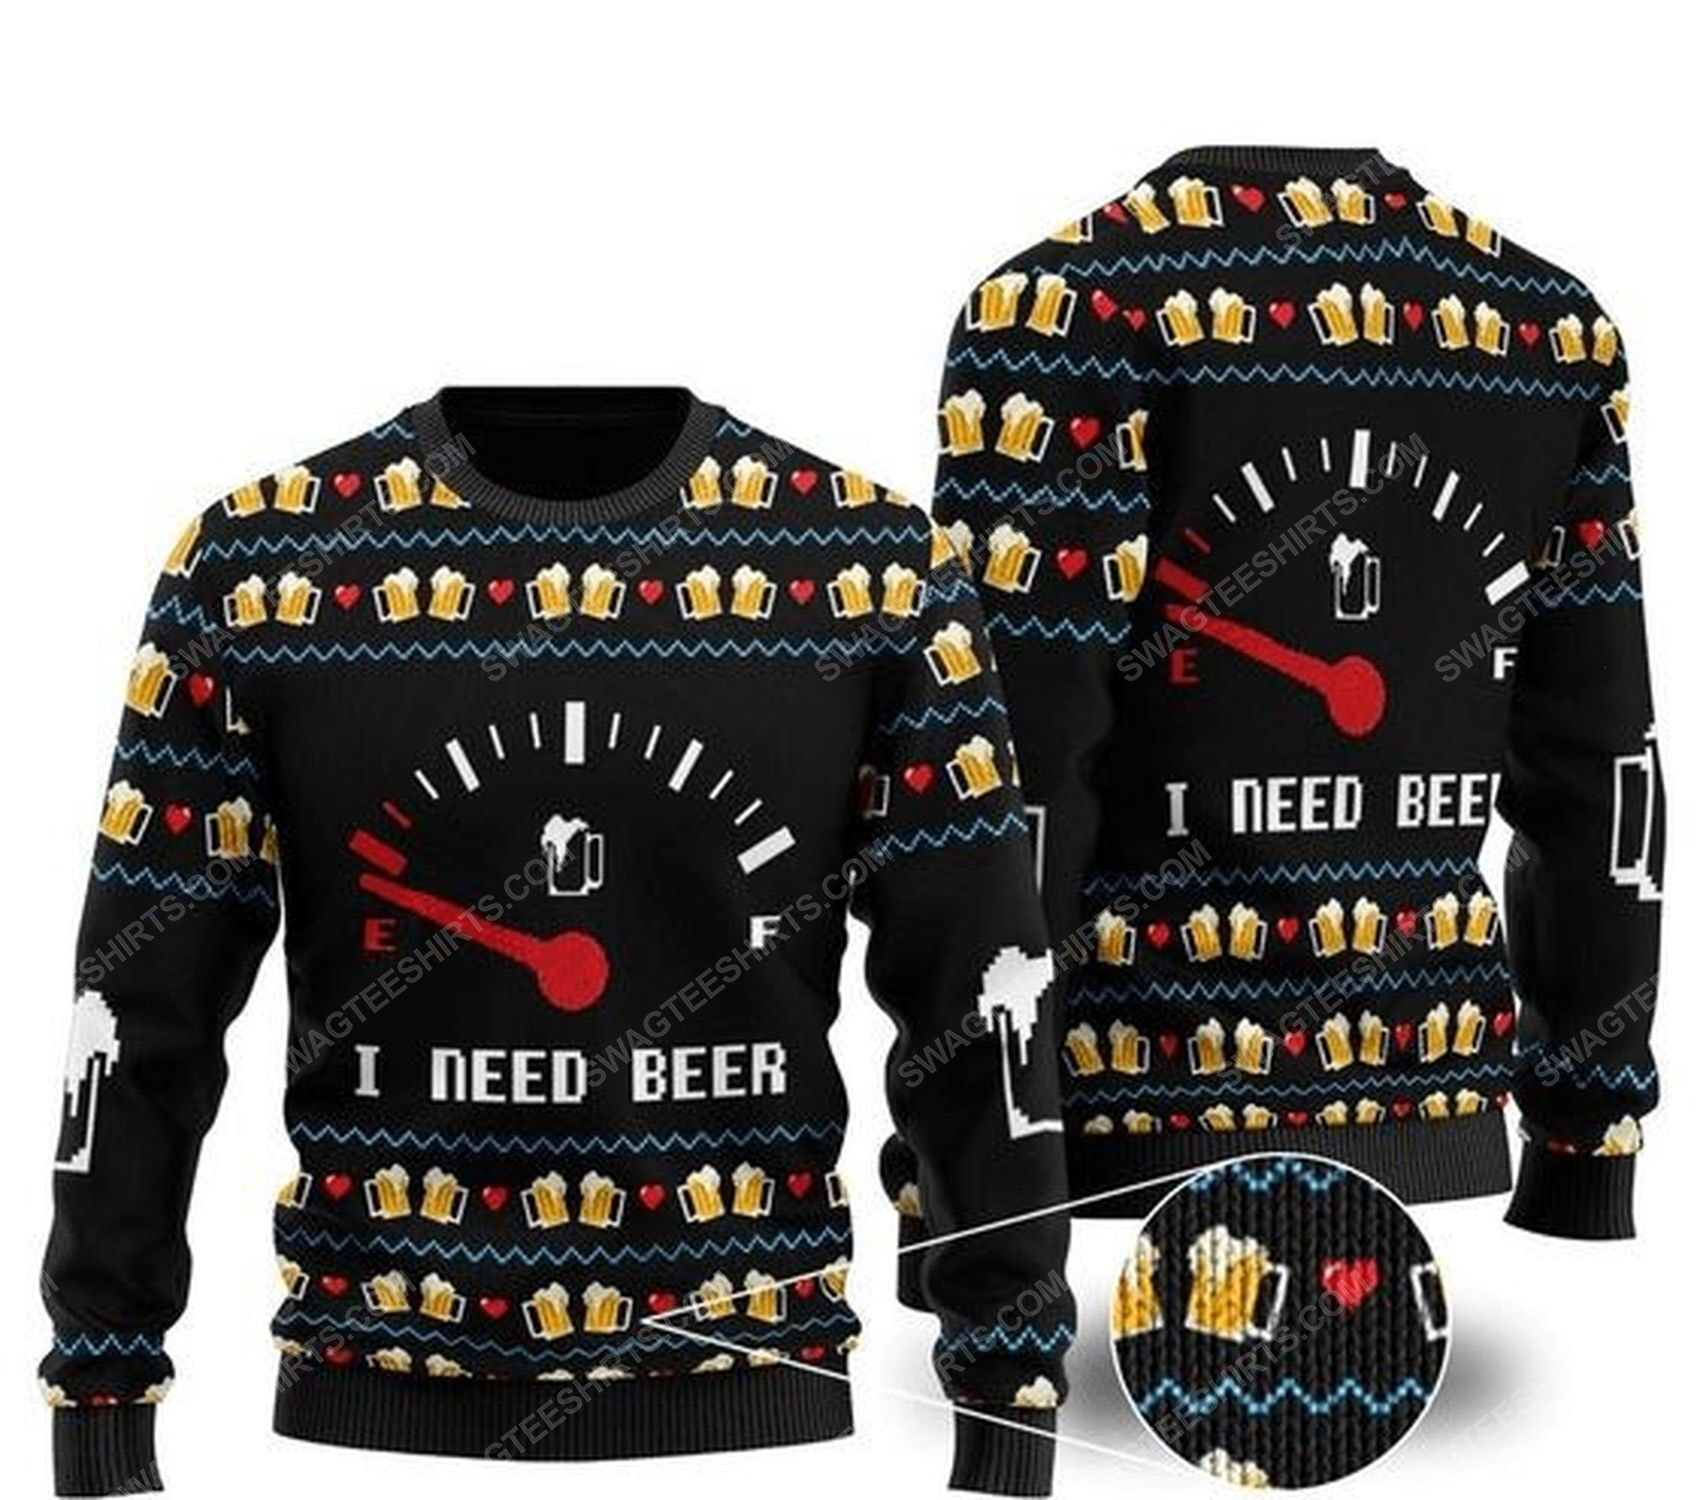 I need beer all over print ugly christmas sweater 1 - Copy - Copy